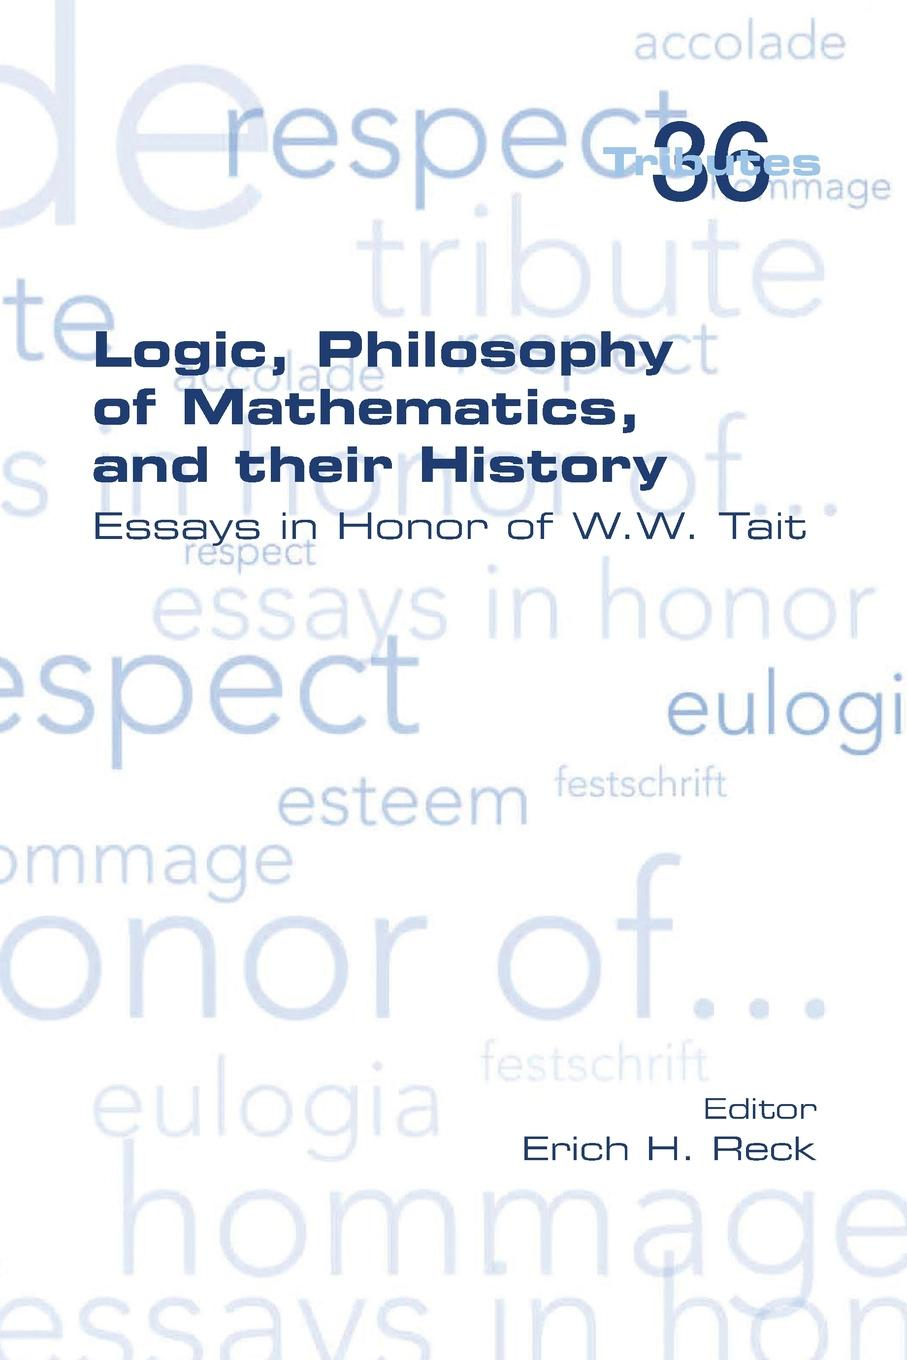 william irwin ender s game and philosophy the logic gate is down Logic, Philosophy of Mathematics, and their History. Essays in Honor of W. W. Tait